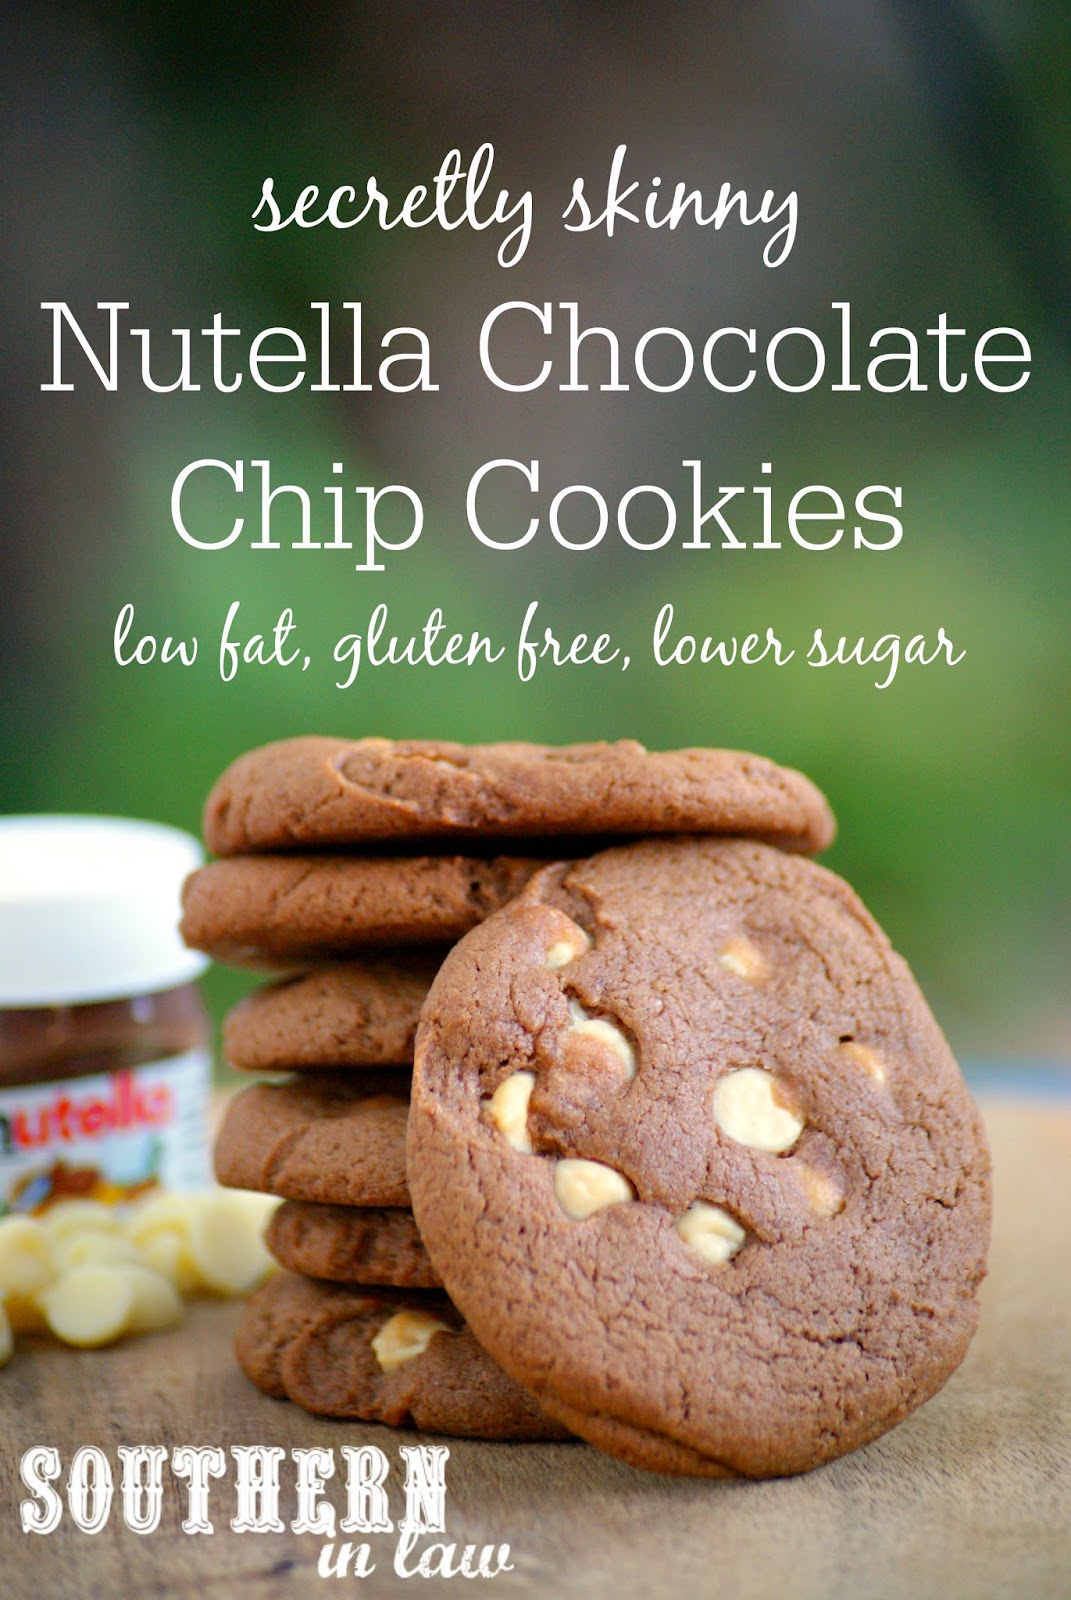 Secretly Skinny Gluten Free Nutella Chocolate Chip Cookie Recipe - low fat, gluten free, lower sugar